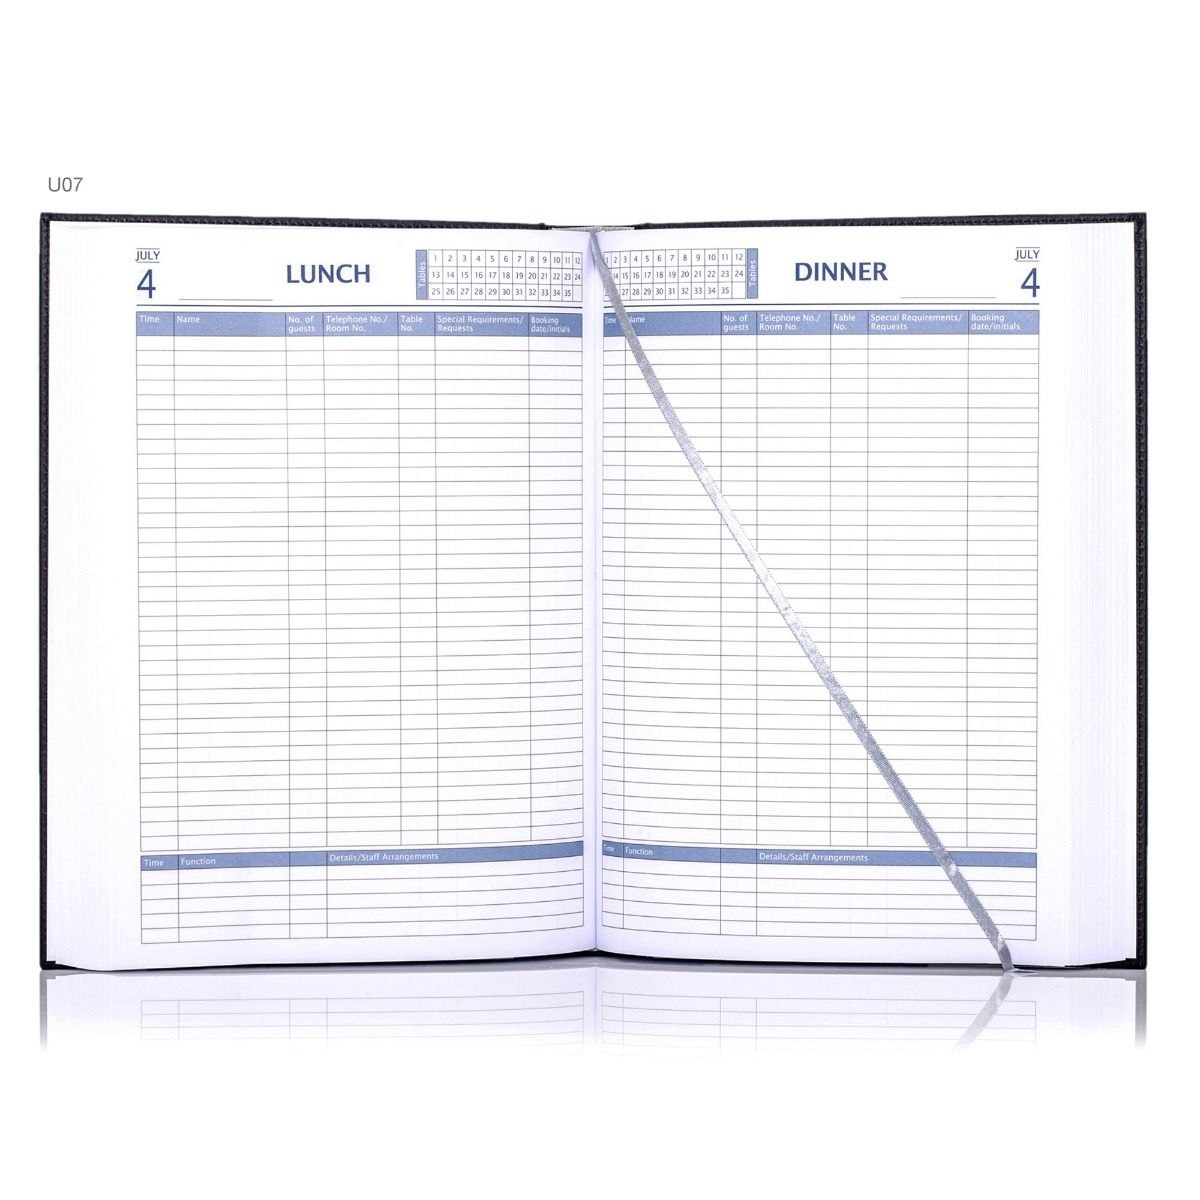 Restaurant Booking Diary Throughout Restaurant Cancellation Policy Template